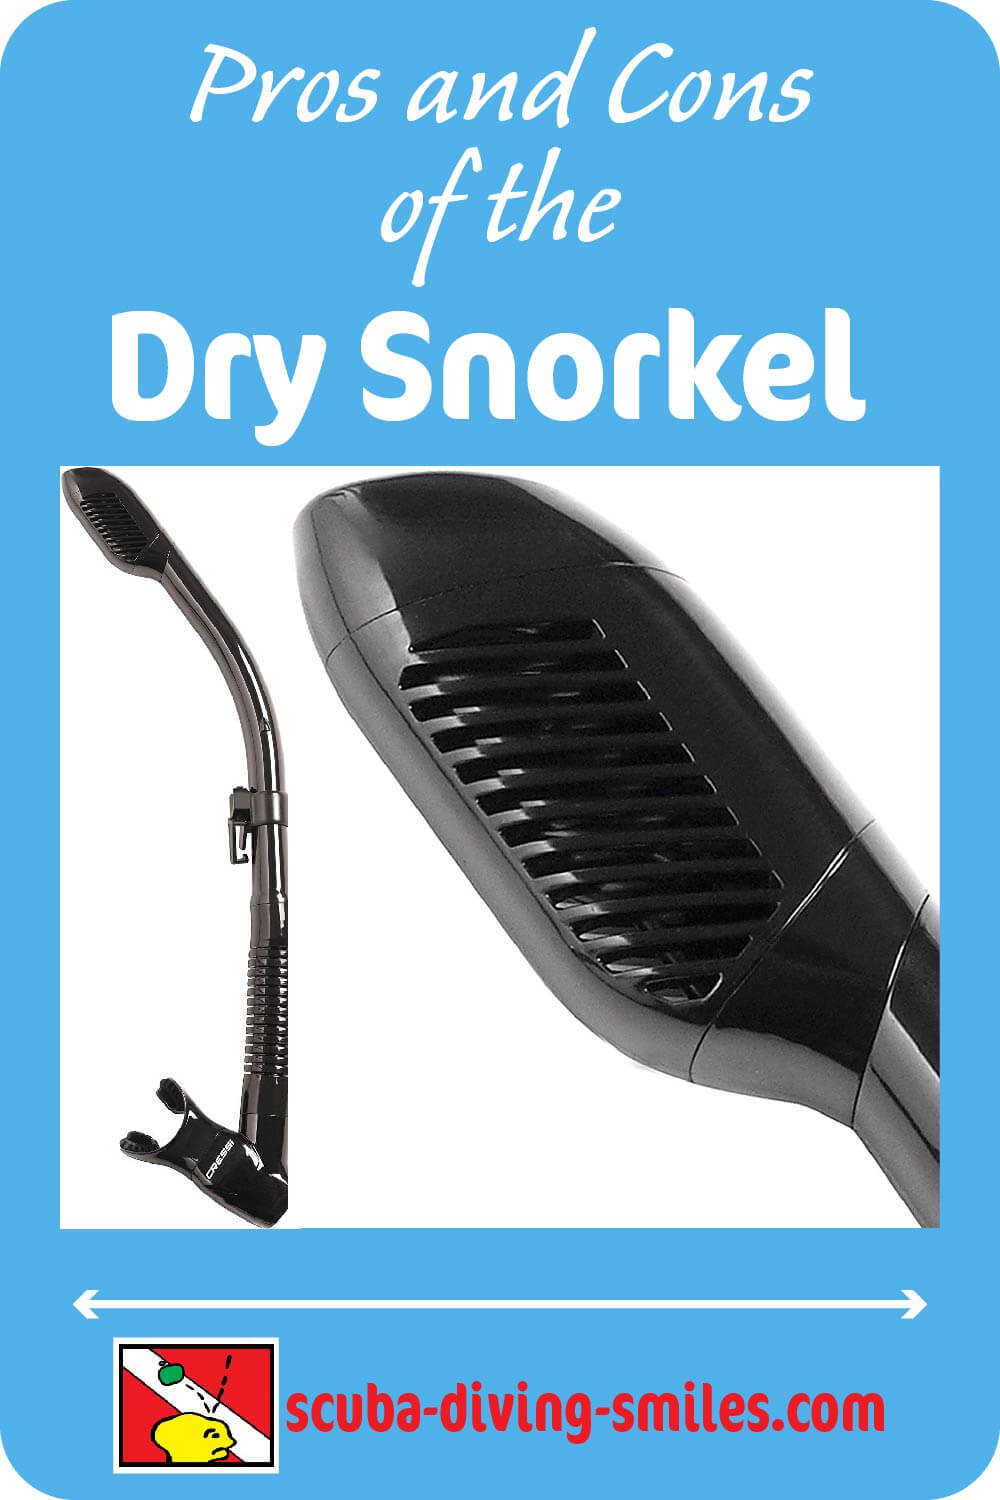 Pros and cons of a dry snorkel